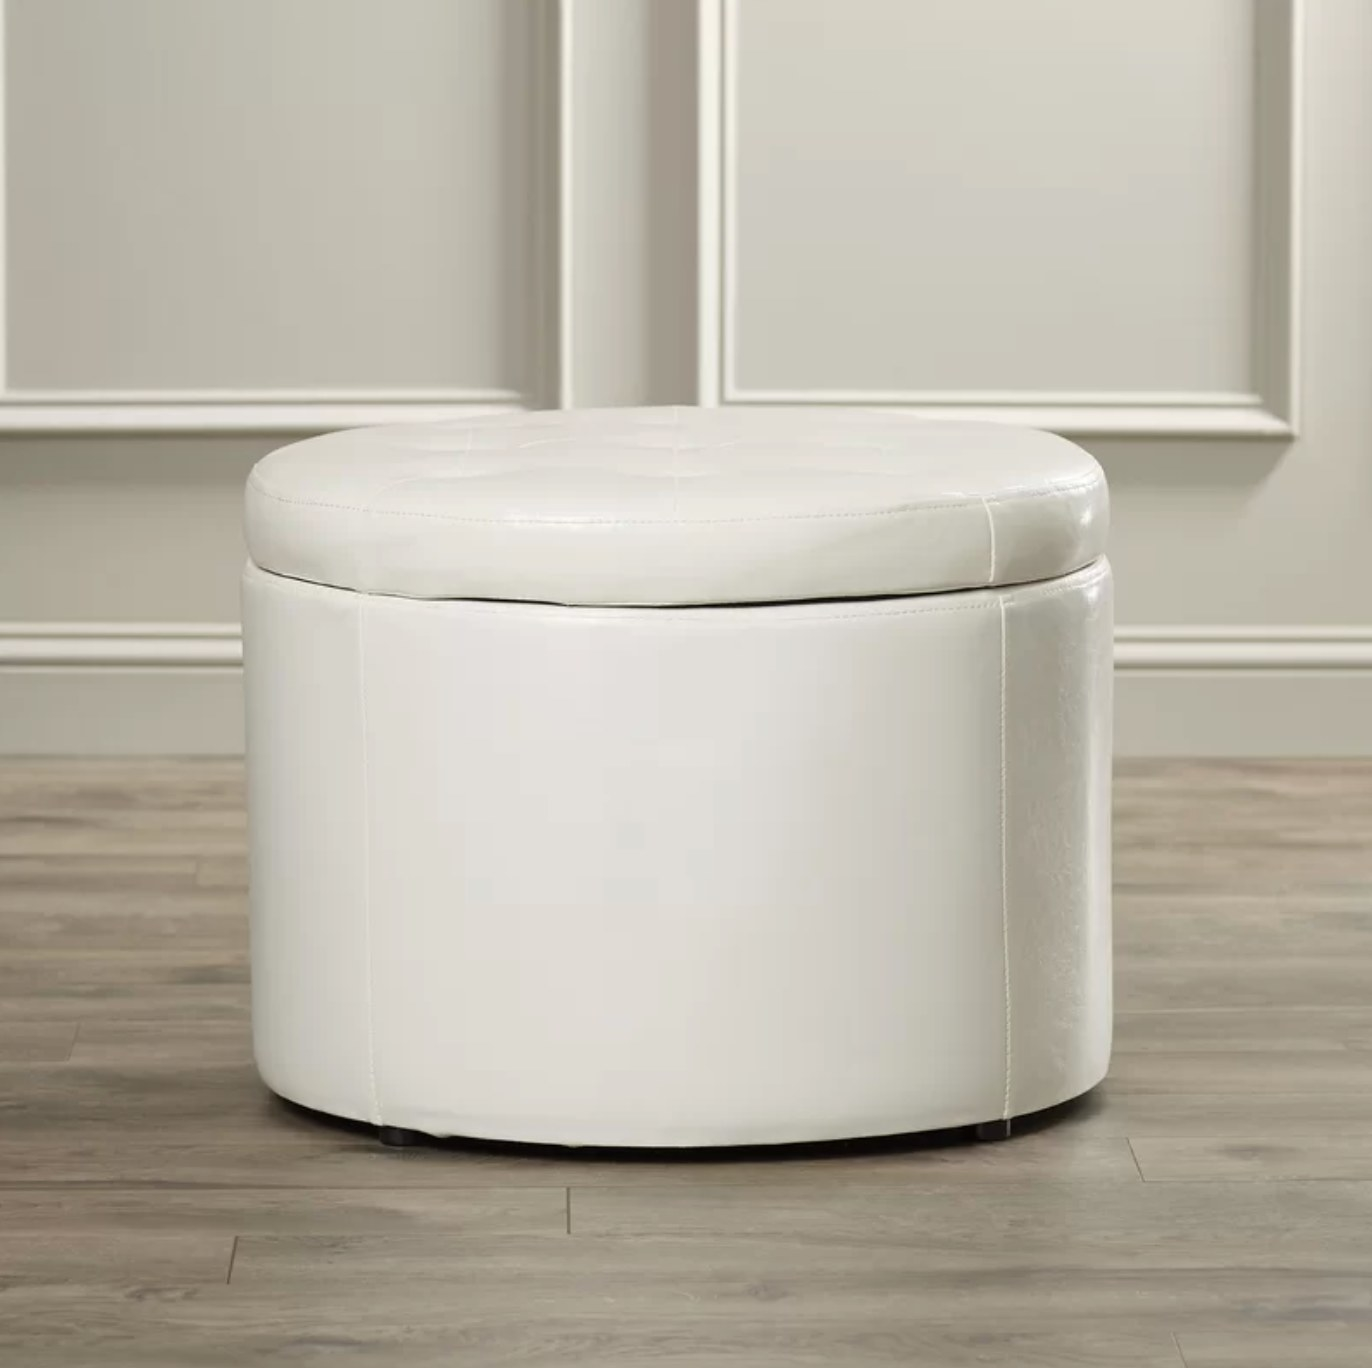 The tufted storage ottoman in ivory